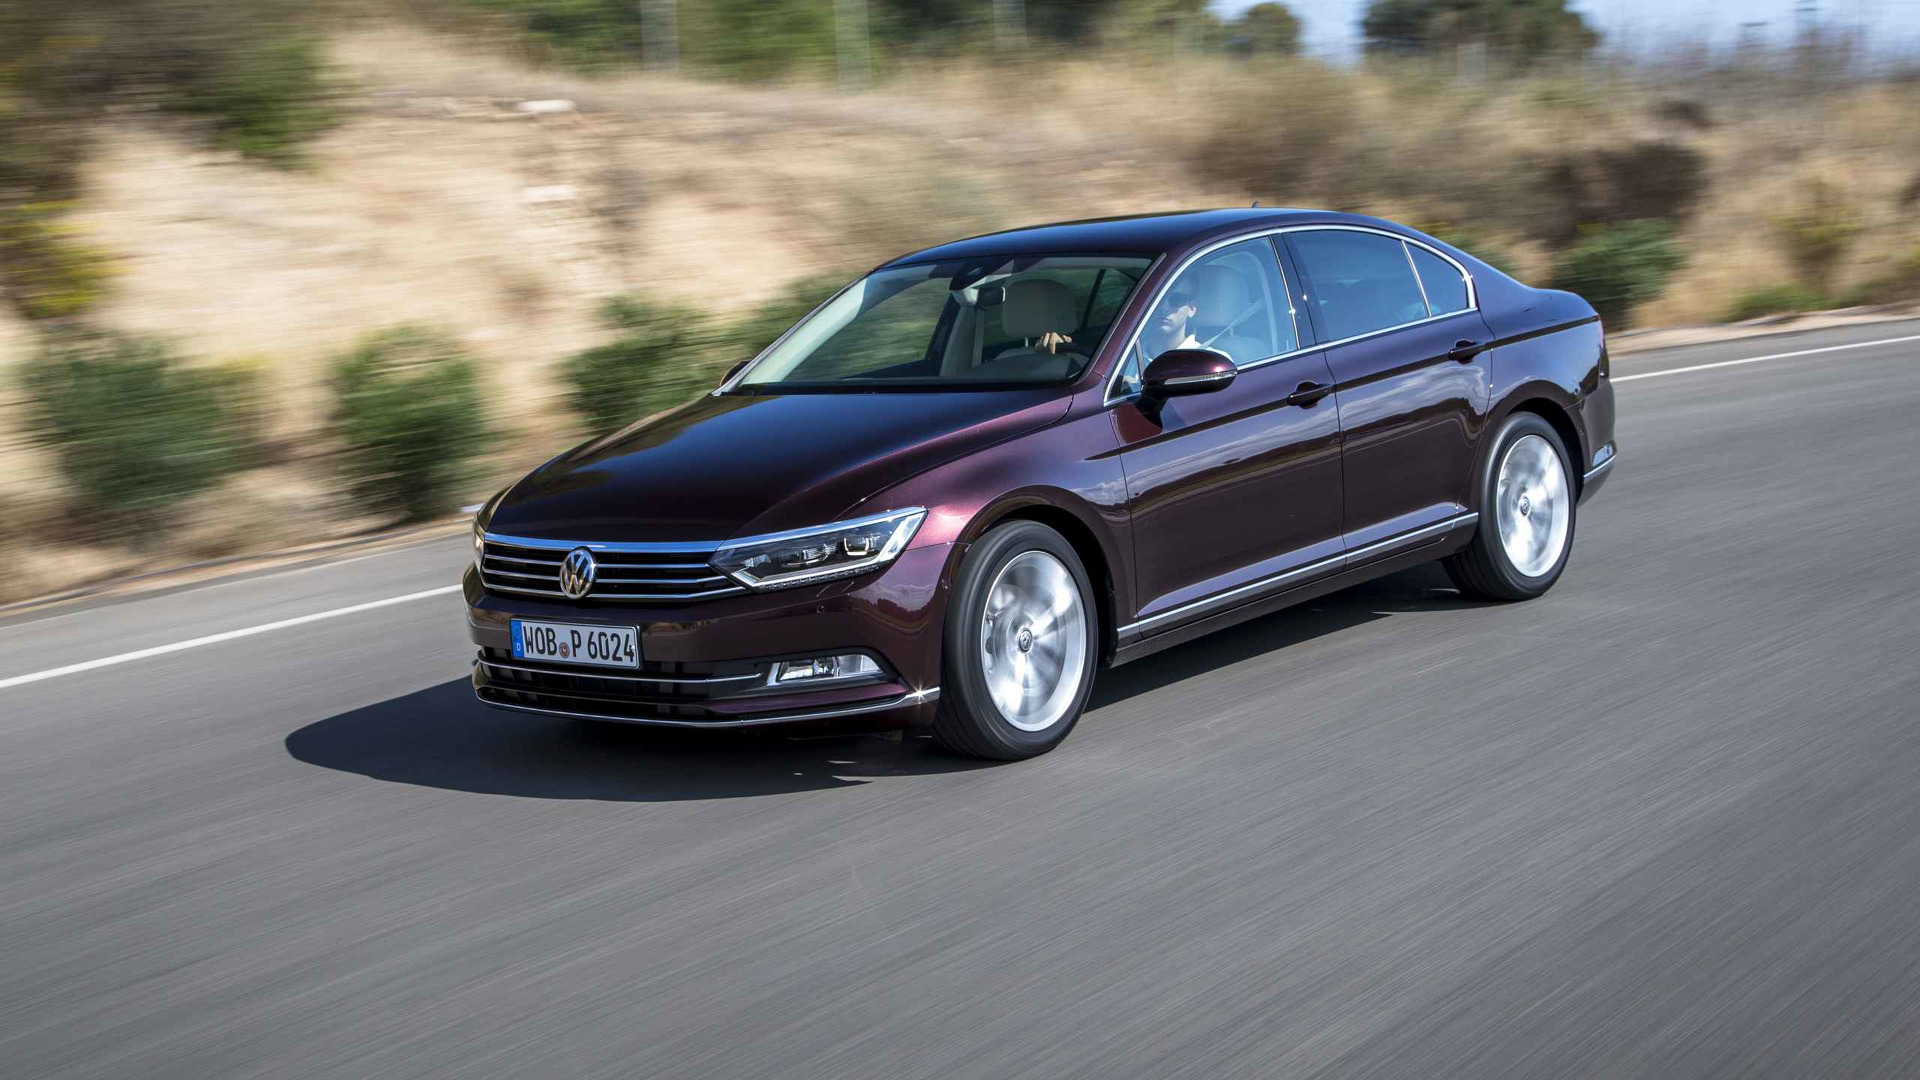 car passat price release vw date picture volkswagen review and redesign